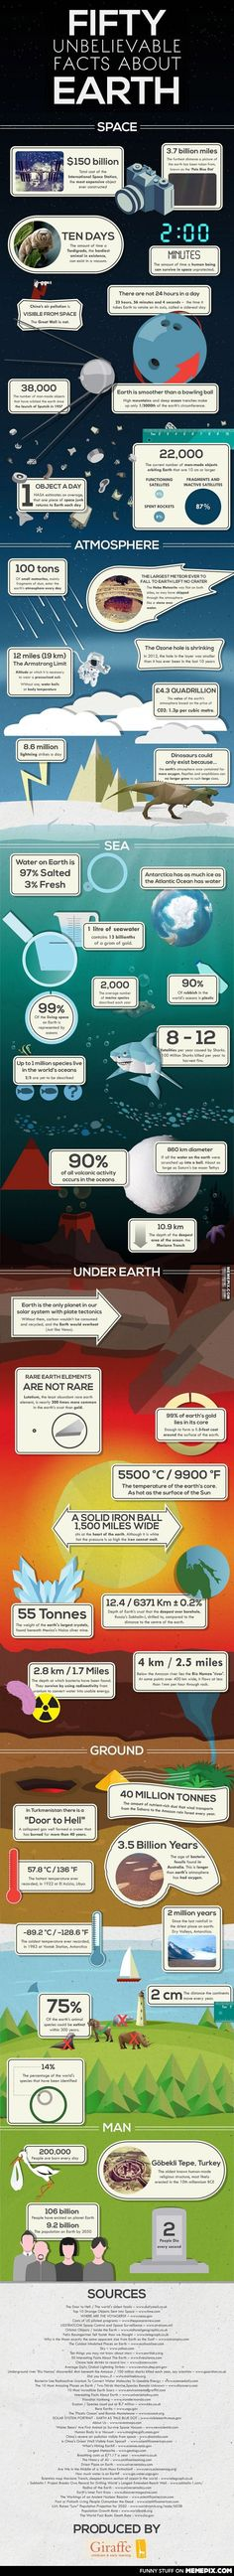 50 Unbelievable Facts About Earth